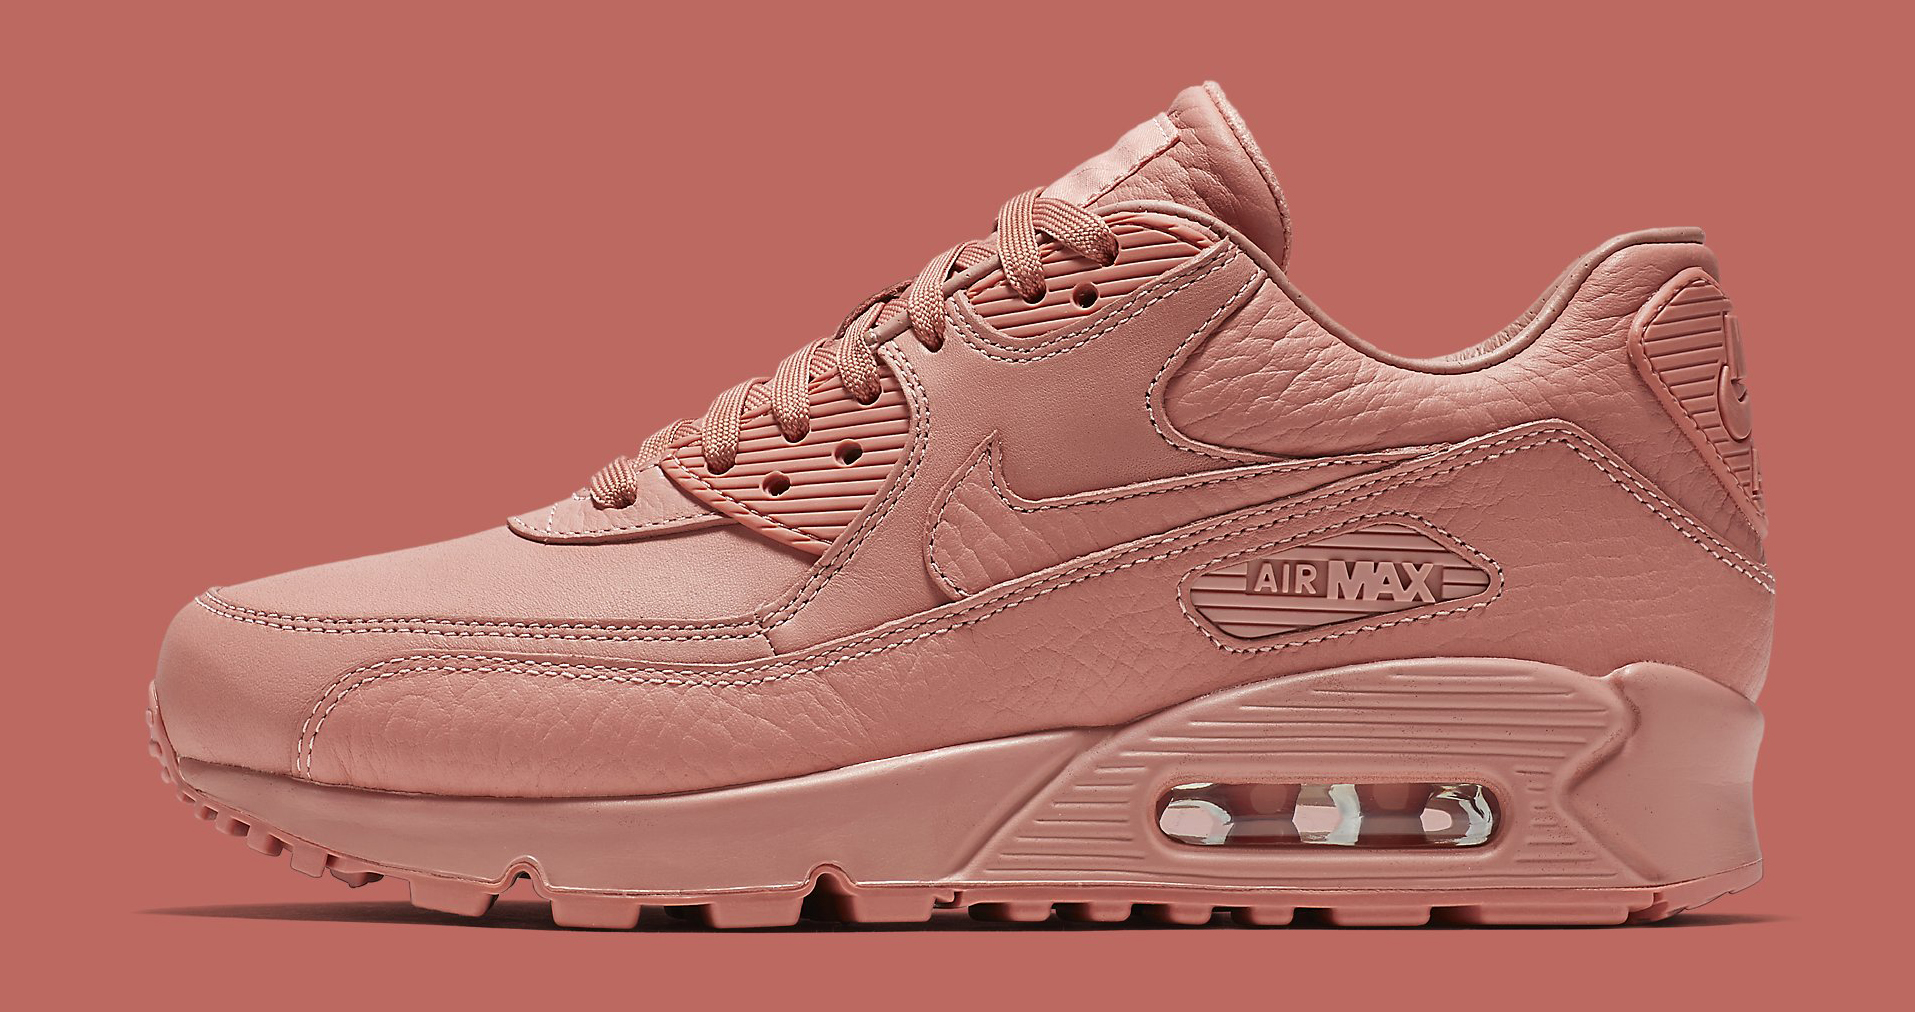 Nike Air Max 90 Pinnacle Pink 839612 601 | Sole Collector